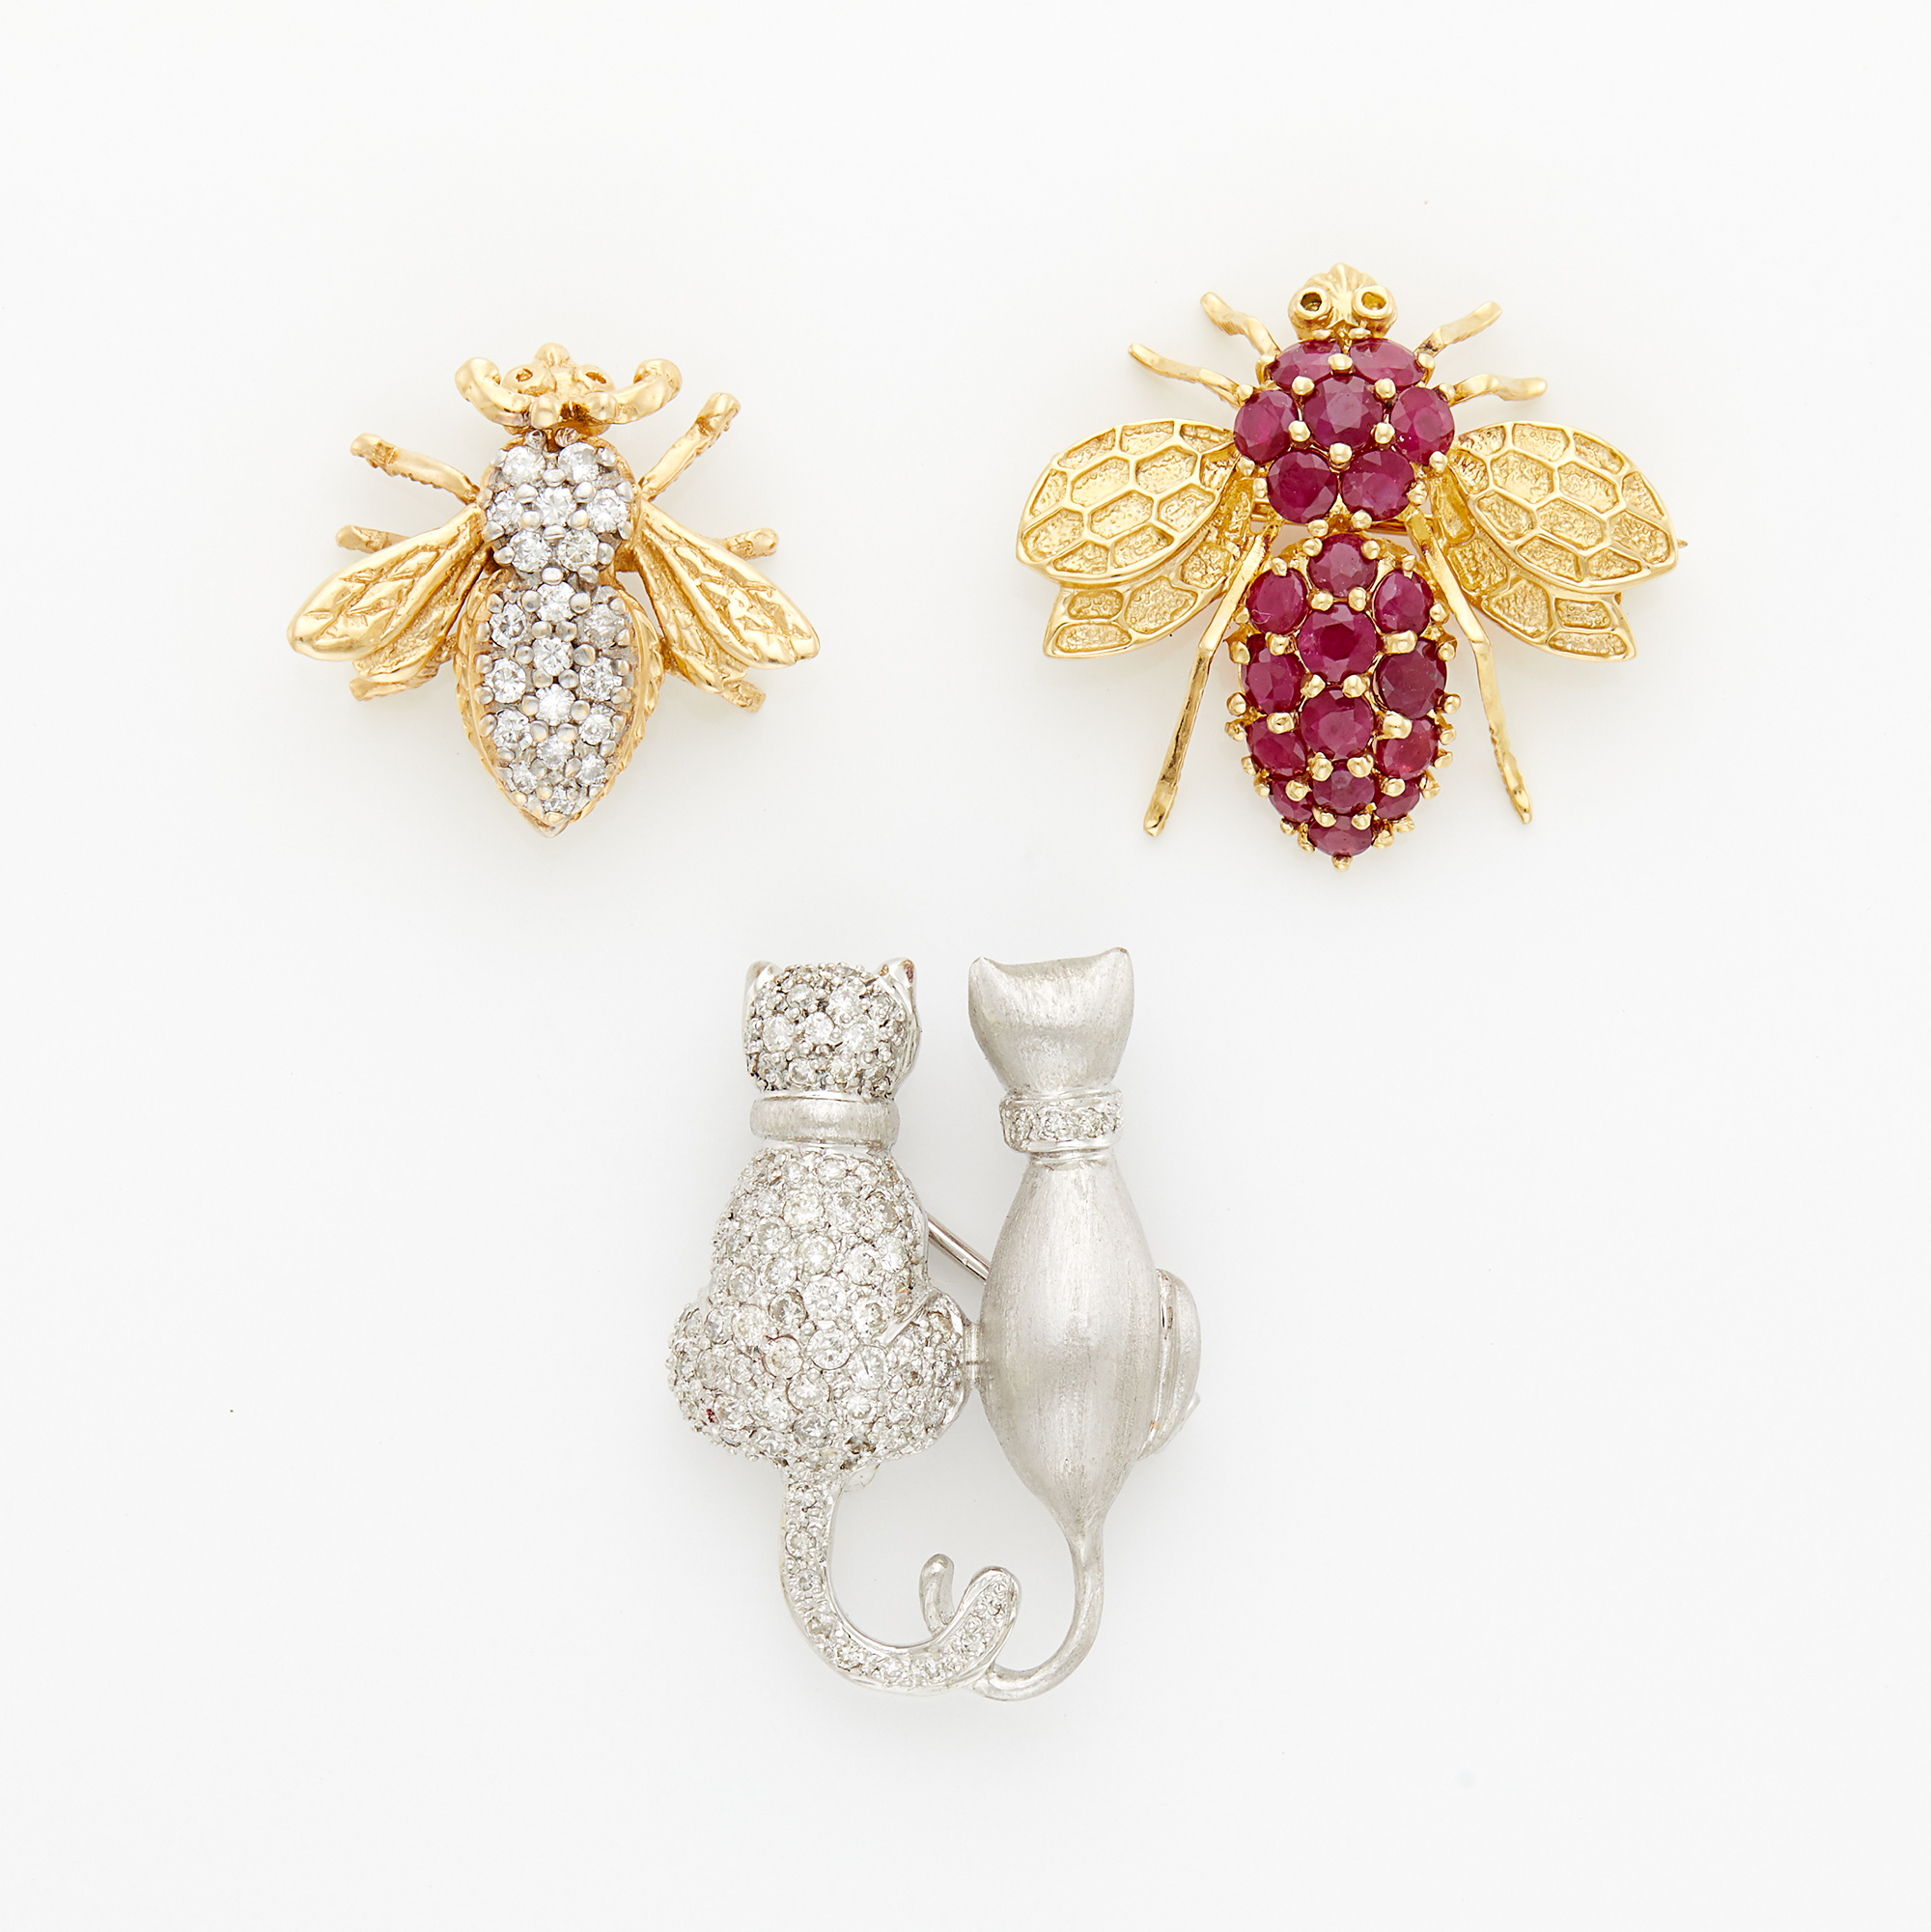 Lot image - Gold and Ruby Insect Pin, Gold and Diamond Insect Pin and White Gold and Diamond Love Cat Pendant-Brooch